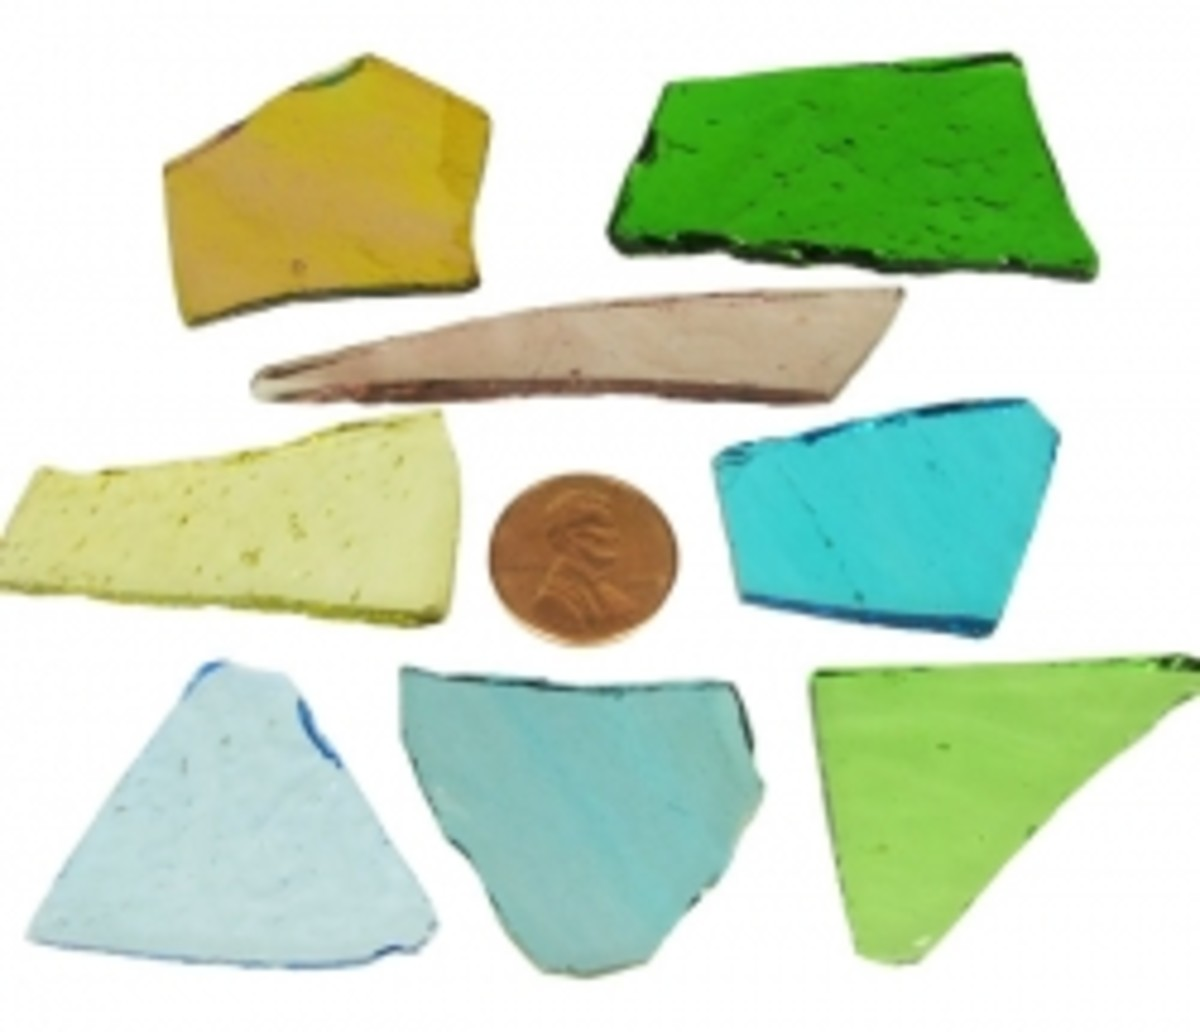 Stained Glass Cobbs shown to size with a penny